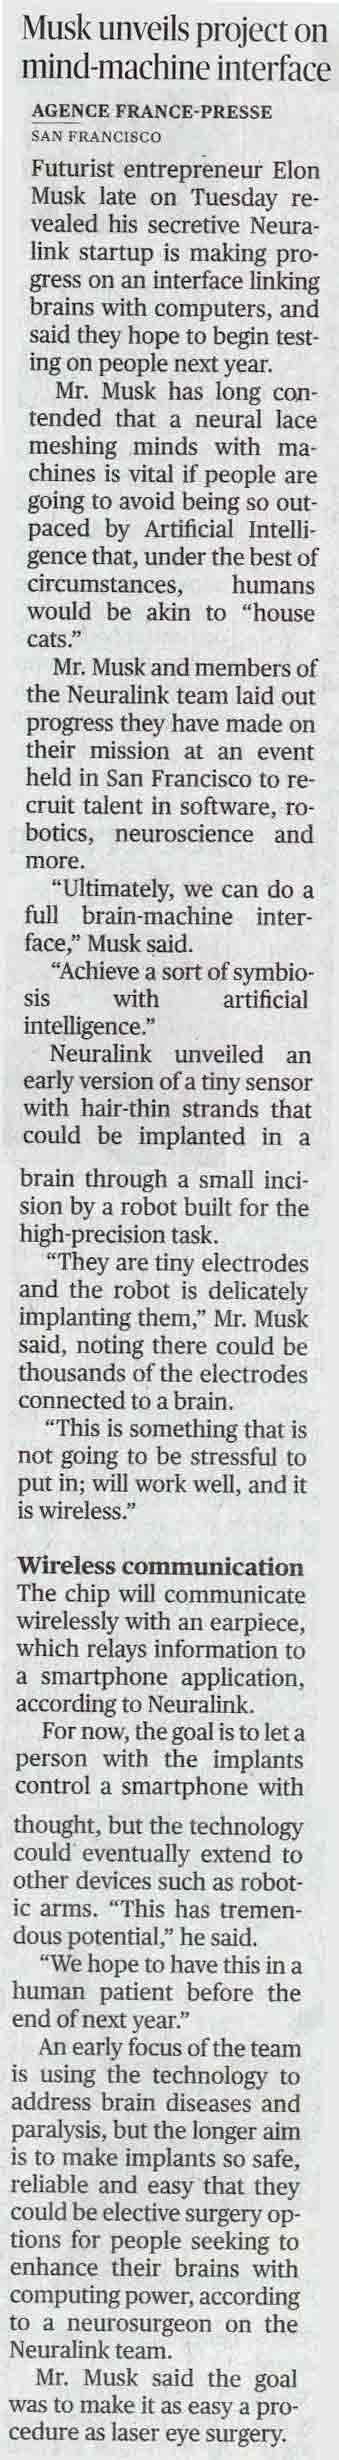 Musk unveils project on mind-machine interface